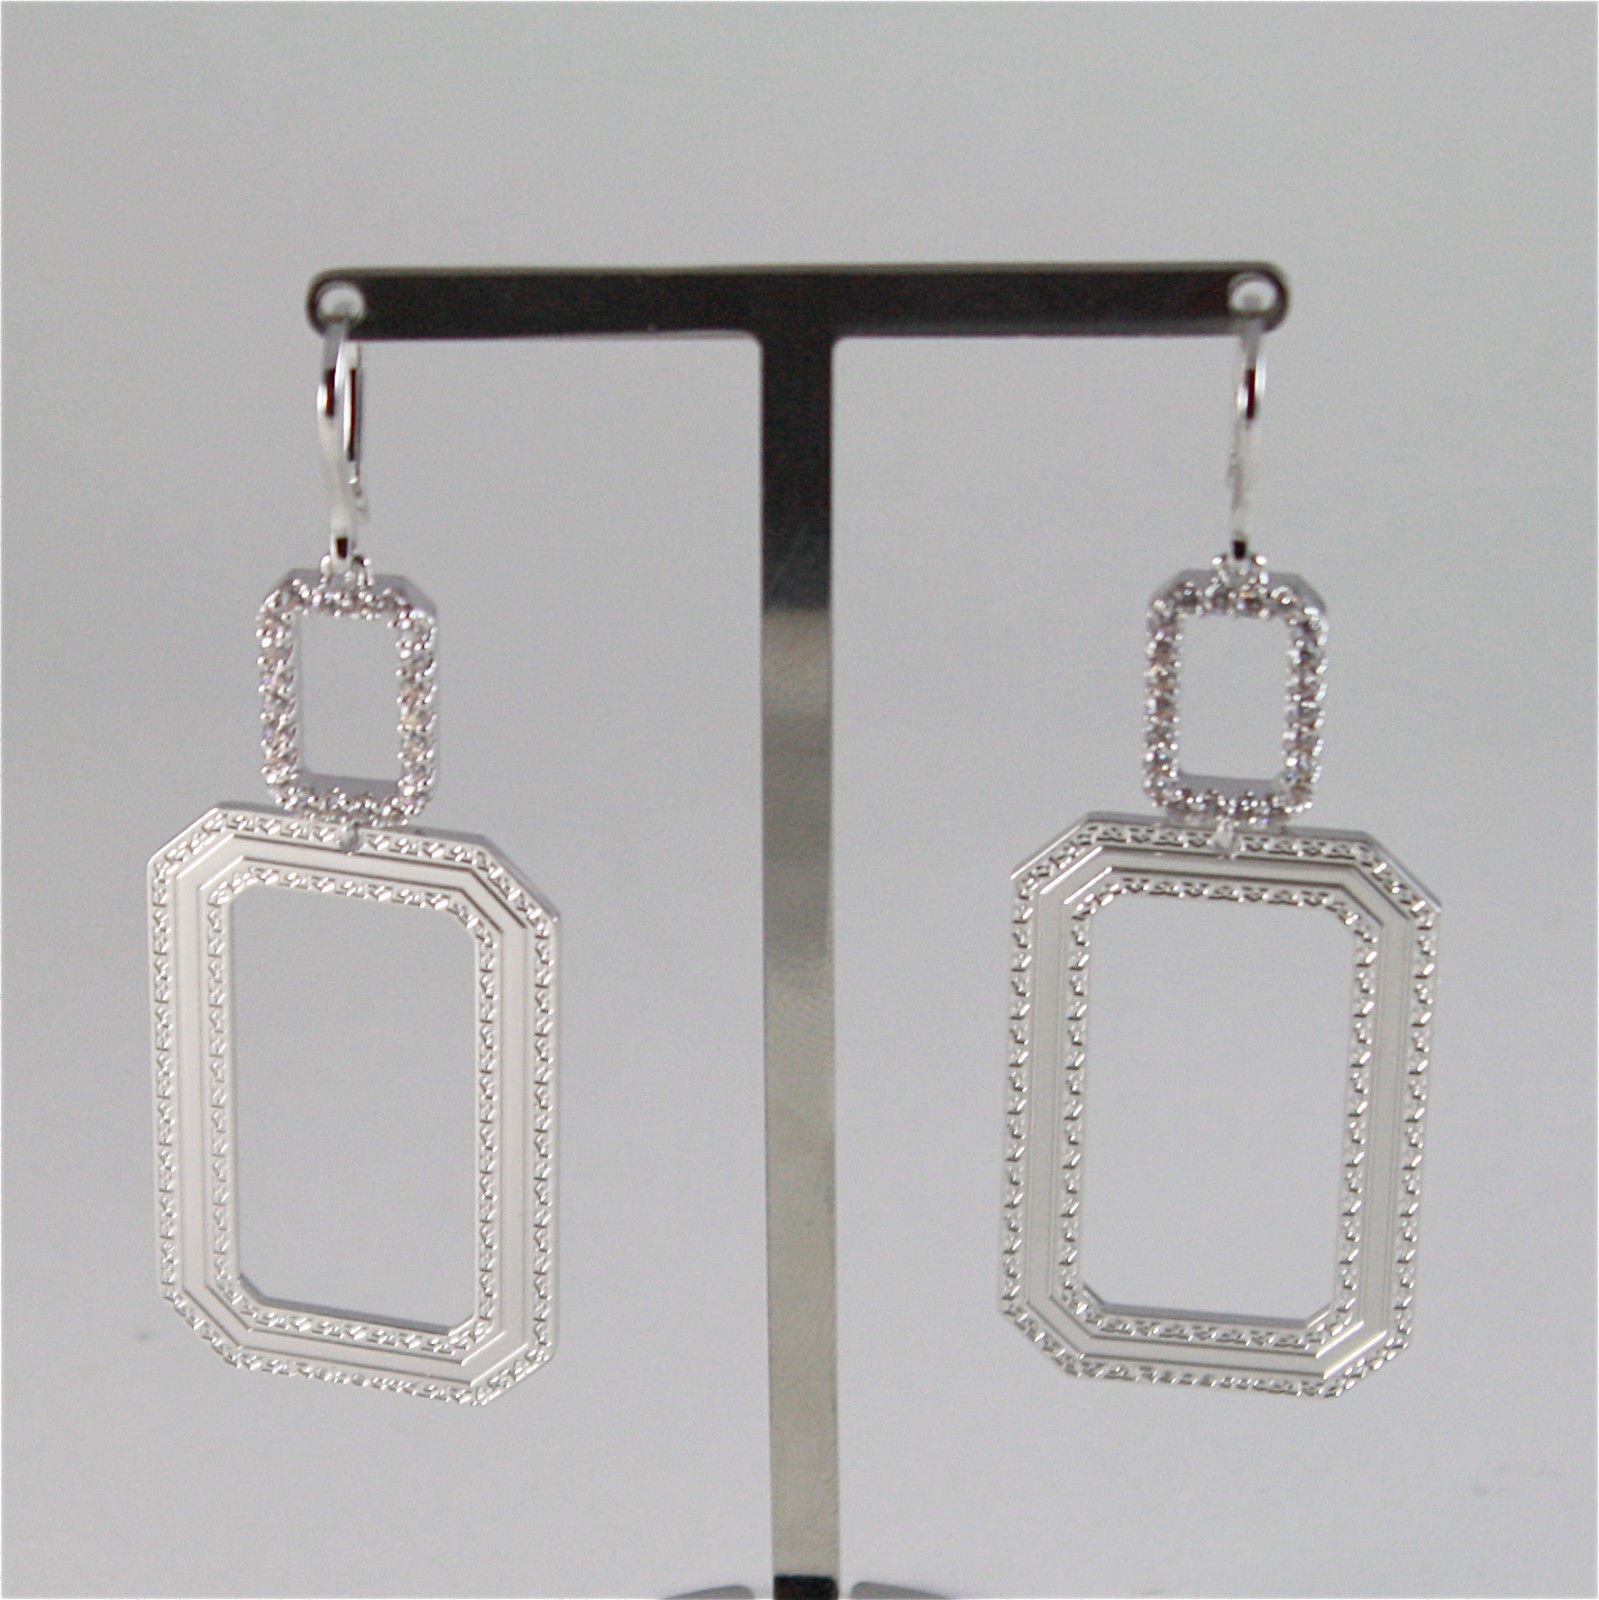 WHITE GOLD PLATED BRONZE REBECCA HOOK EARRINGS ELIZABETH BELOBB05 MADE IN ITALY